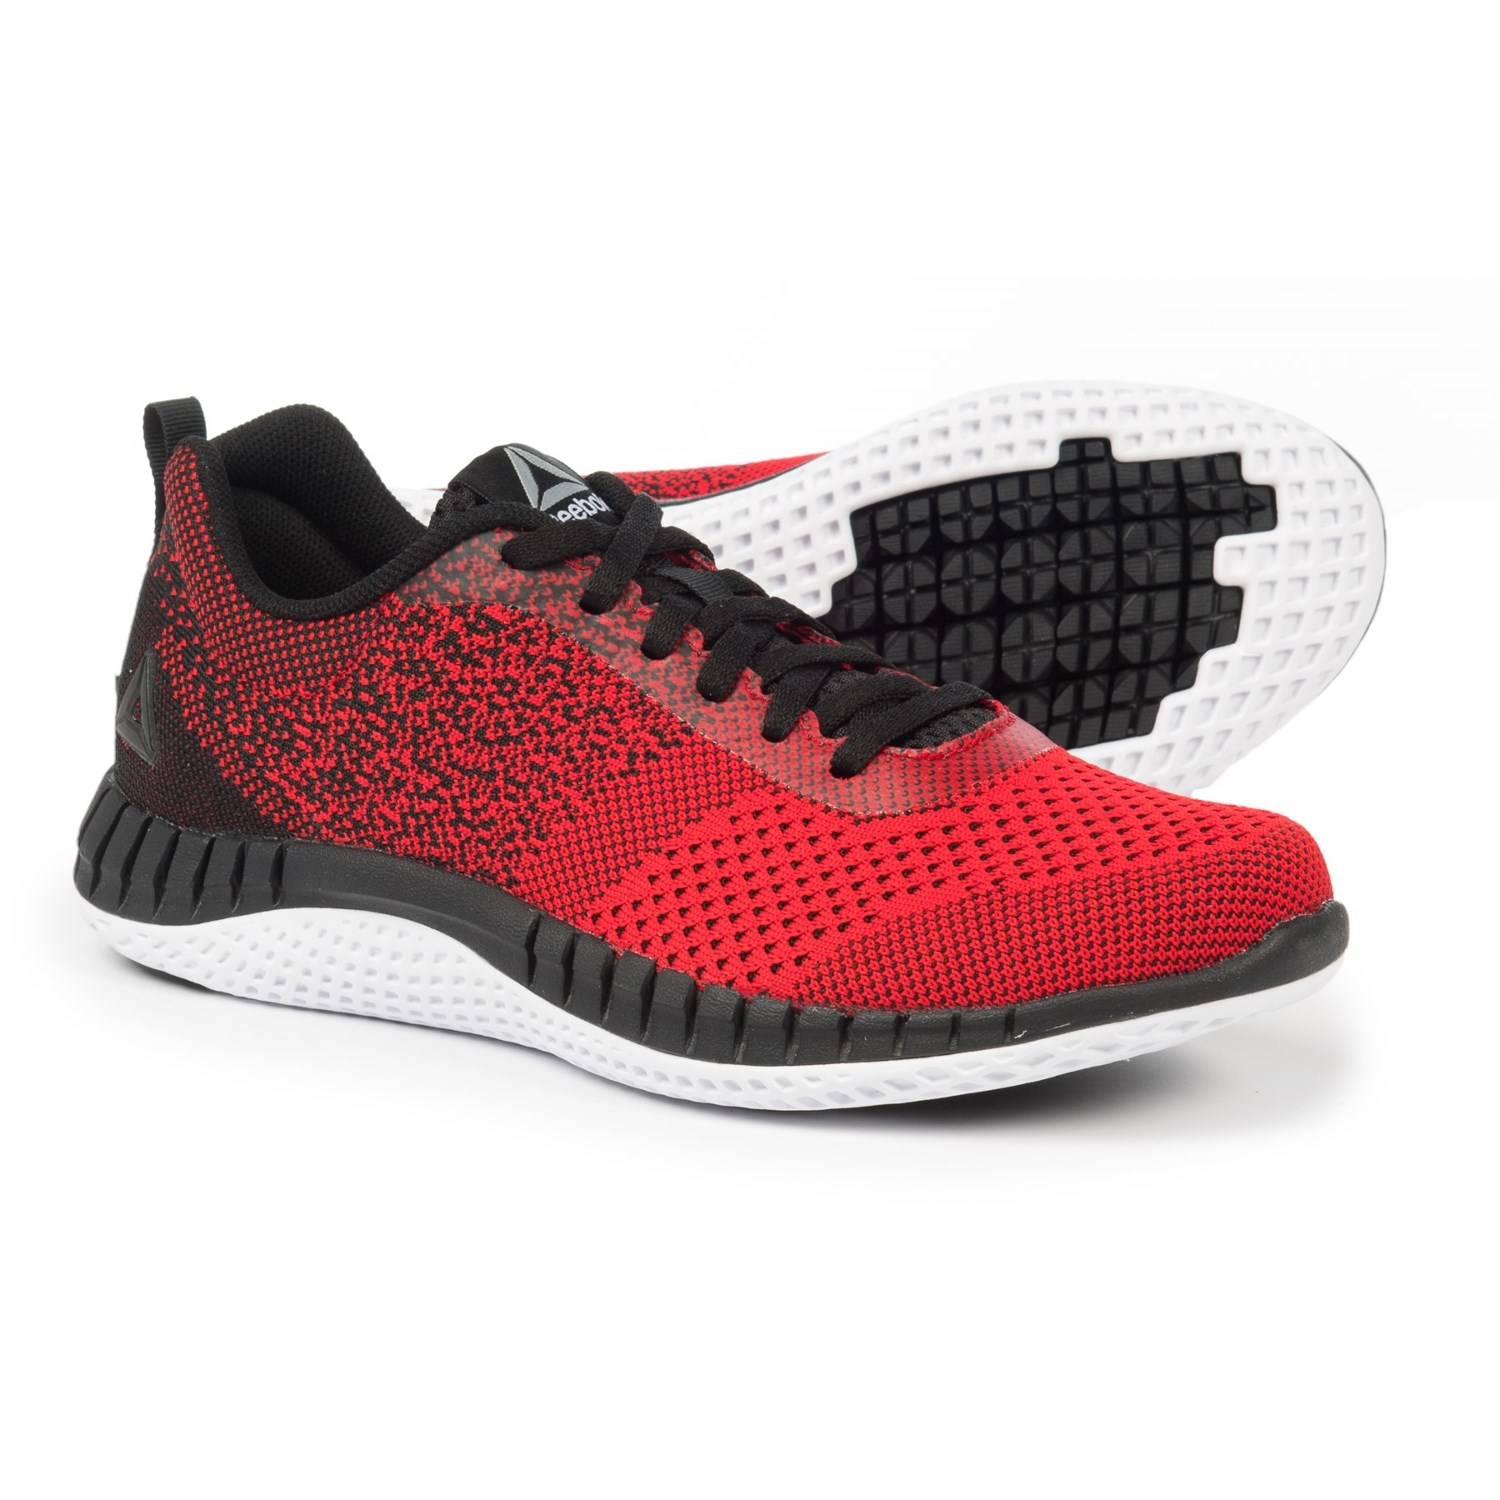 Reebok Print Prime Ultra-Knit Running Shoes (For Boys) in Primal Red/